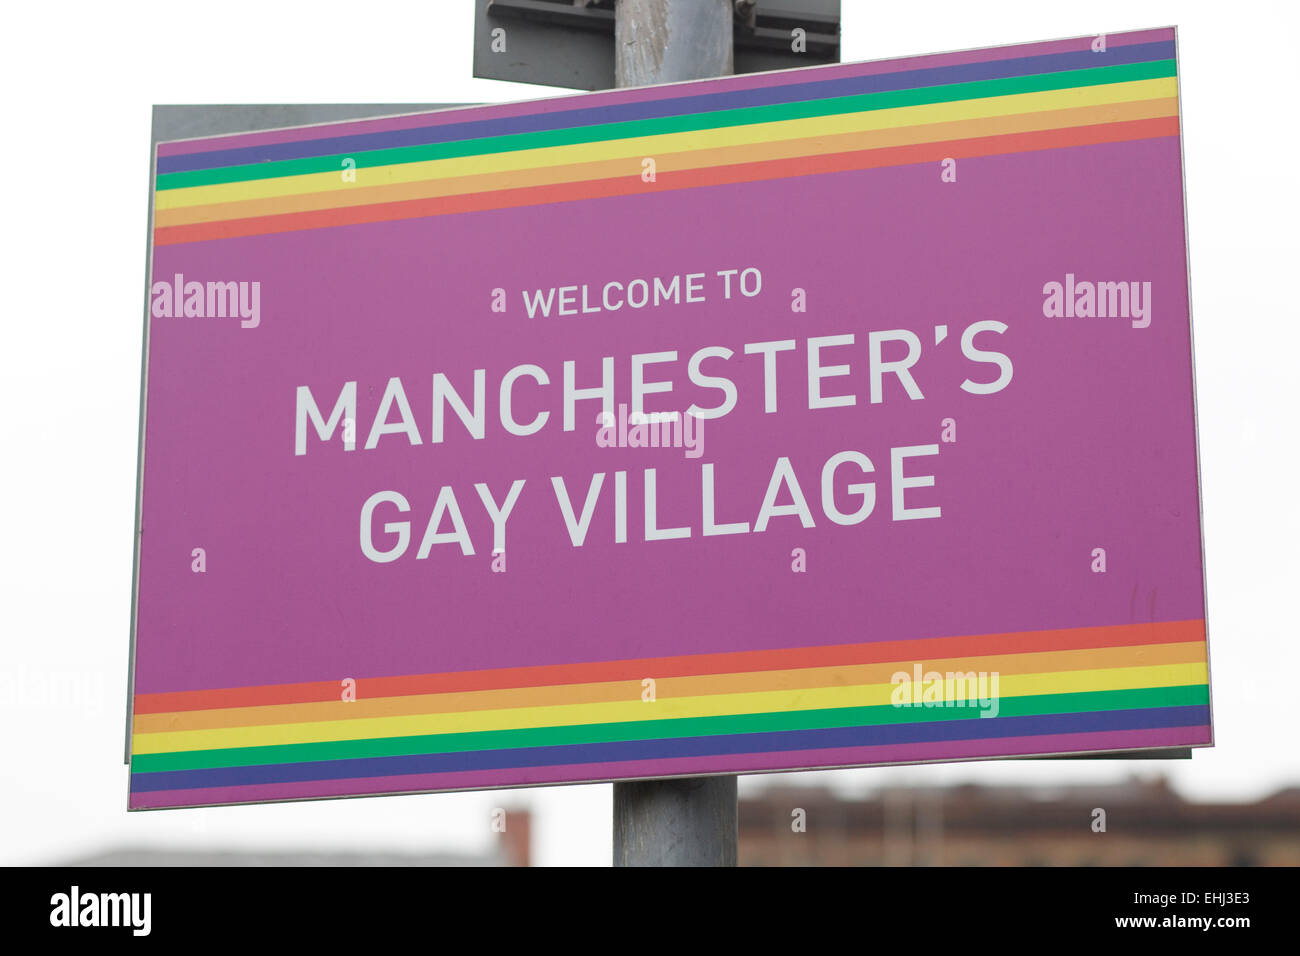 Welcome to Manchester's Gay Village Sign - Stock Image